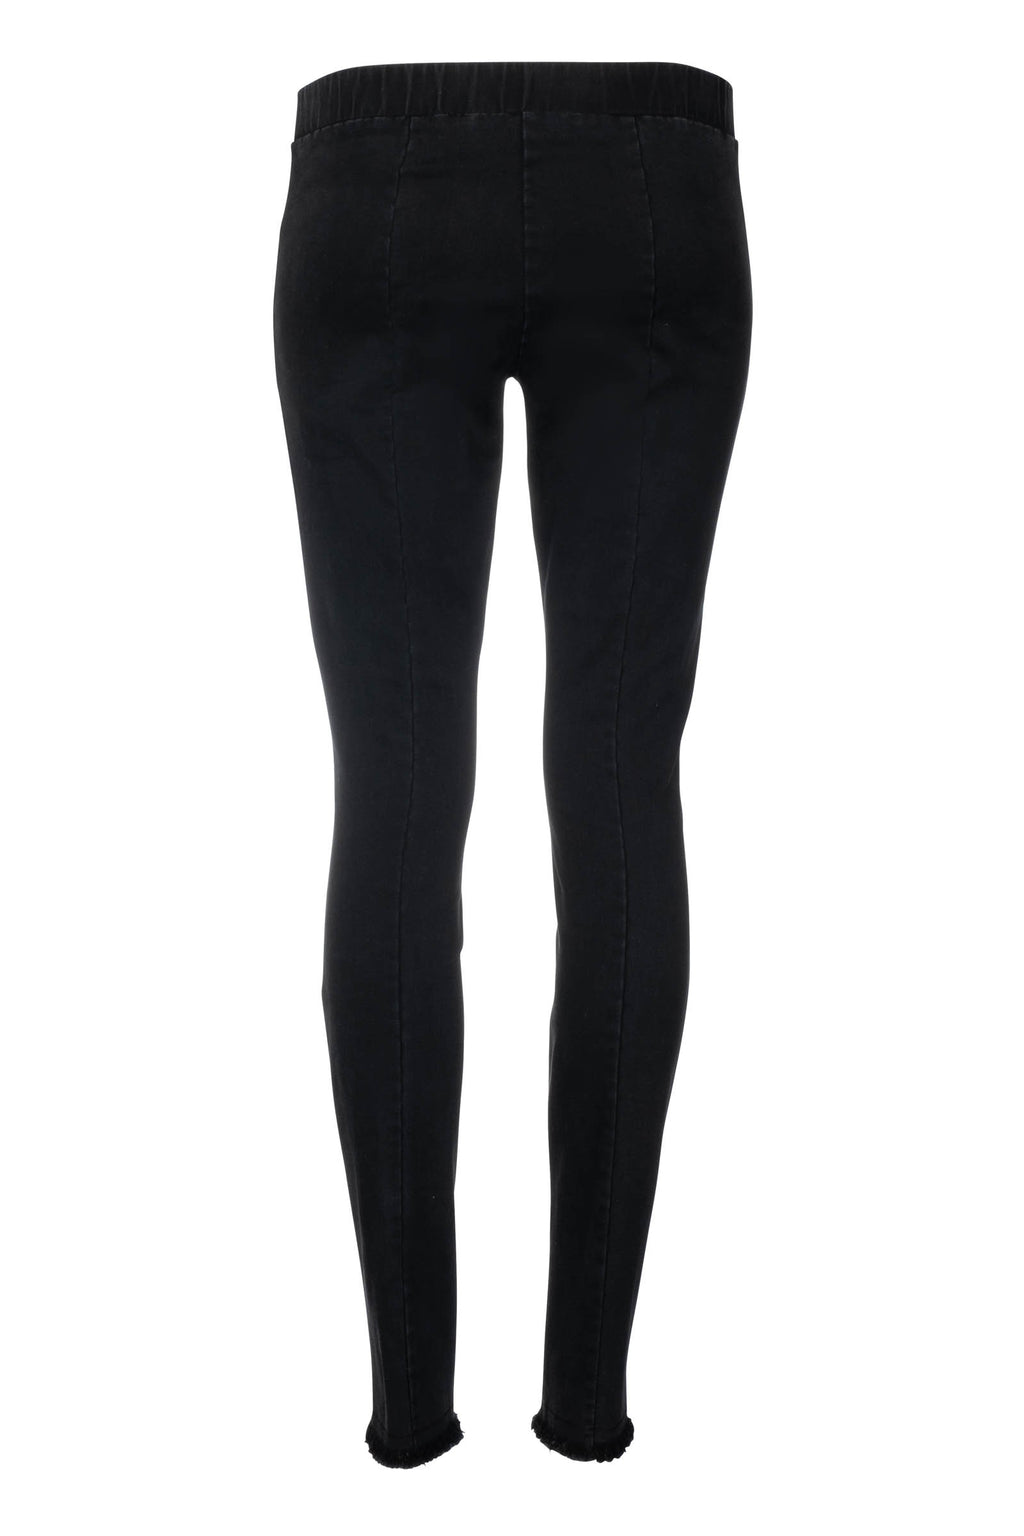 Denim Legging with Fringe - Black